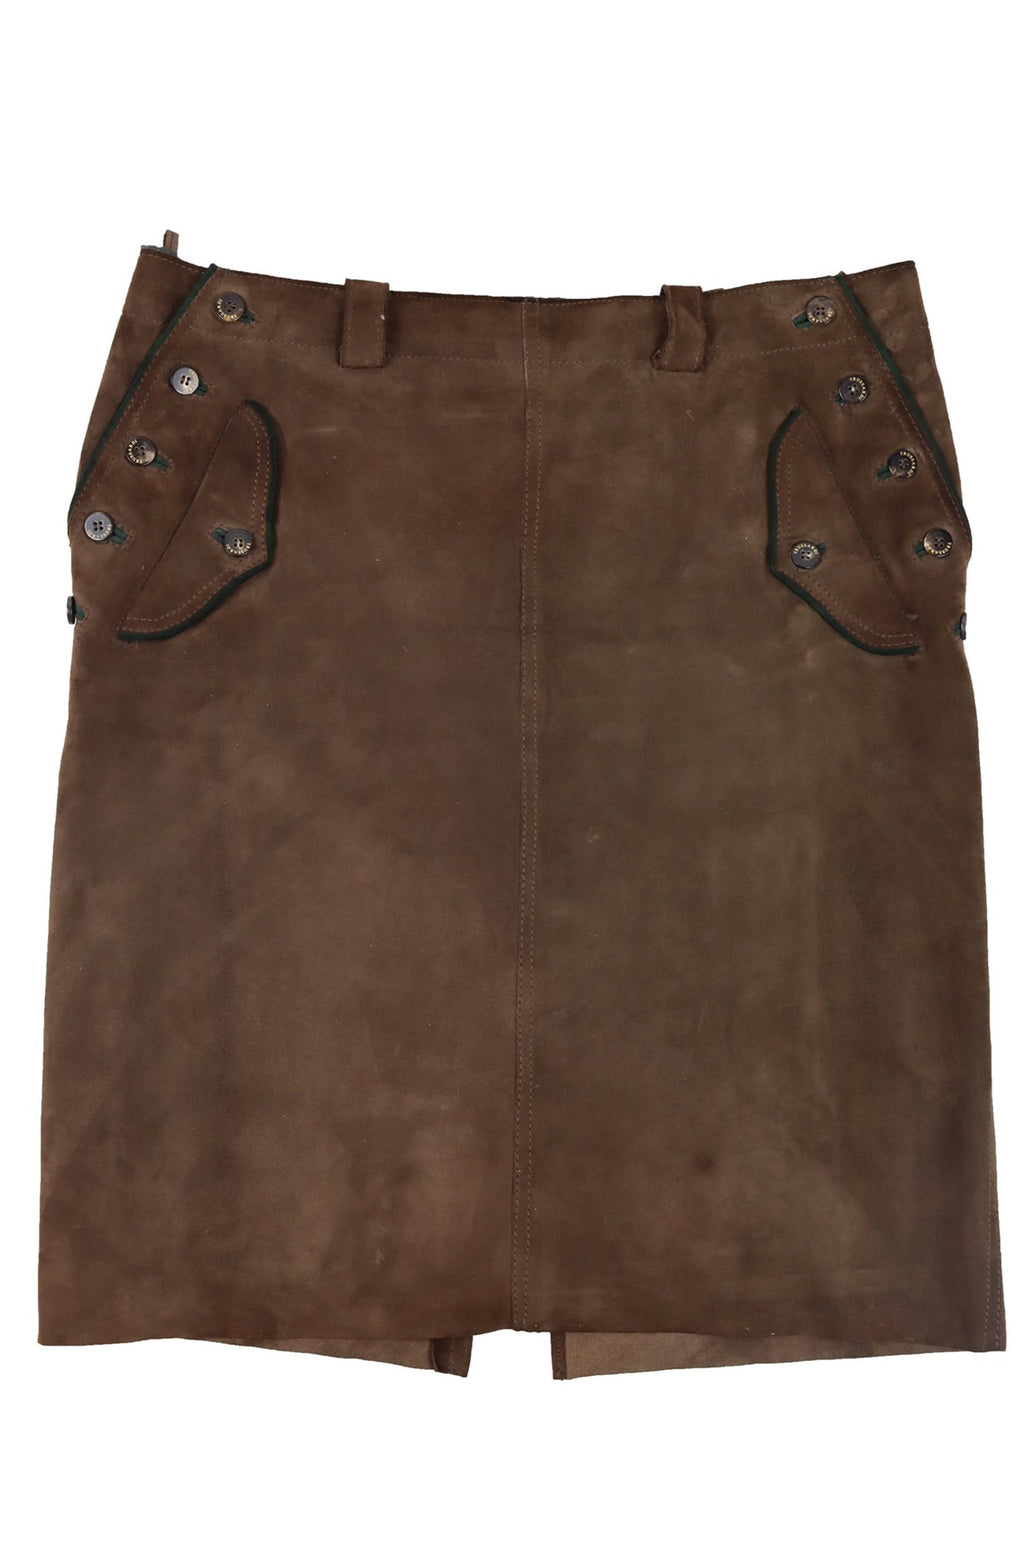 Trussardi Brown Suede Skirt with Pockets Size 42 (EU)